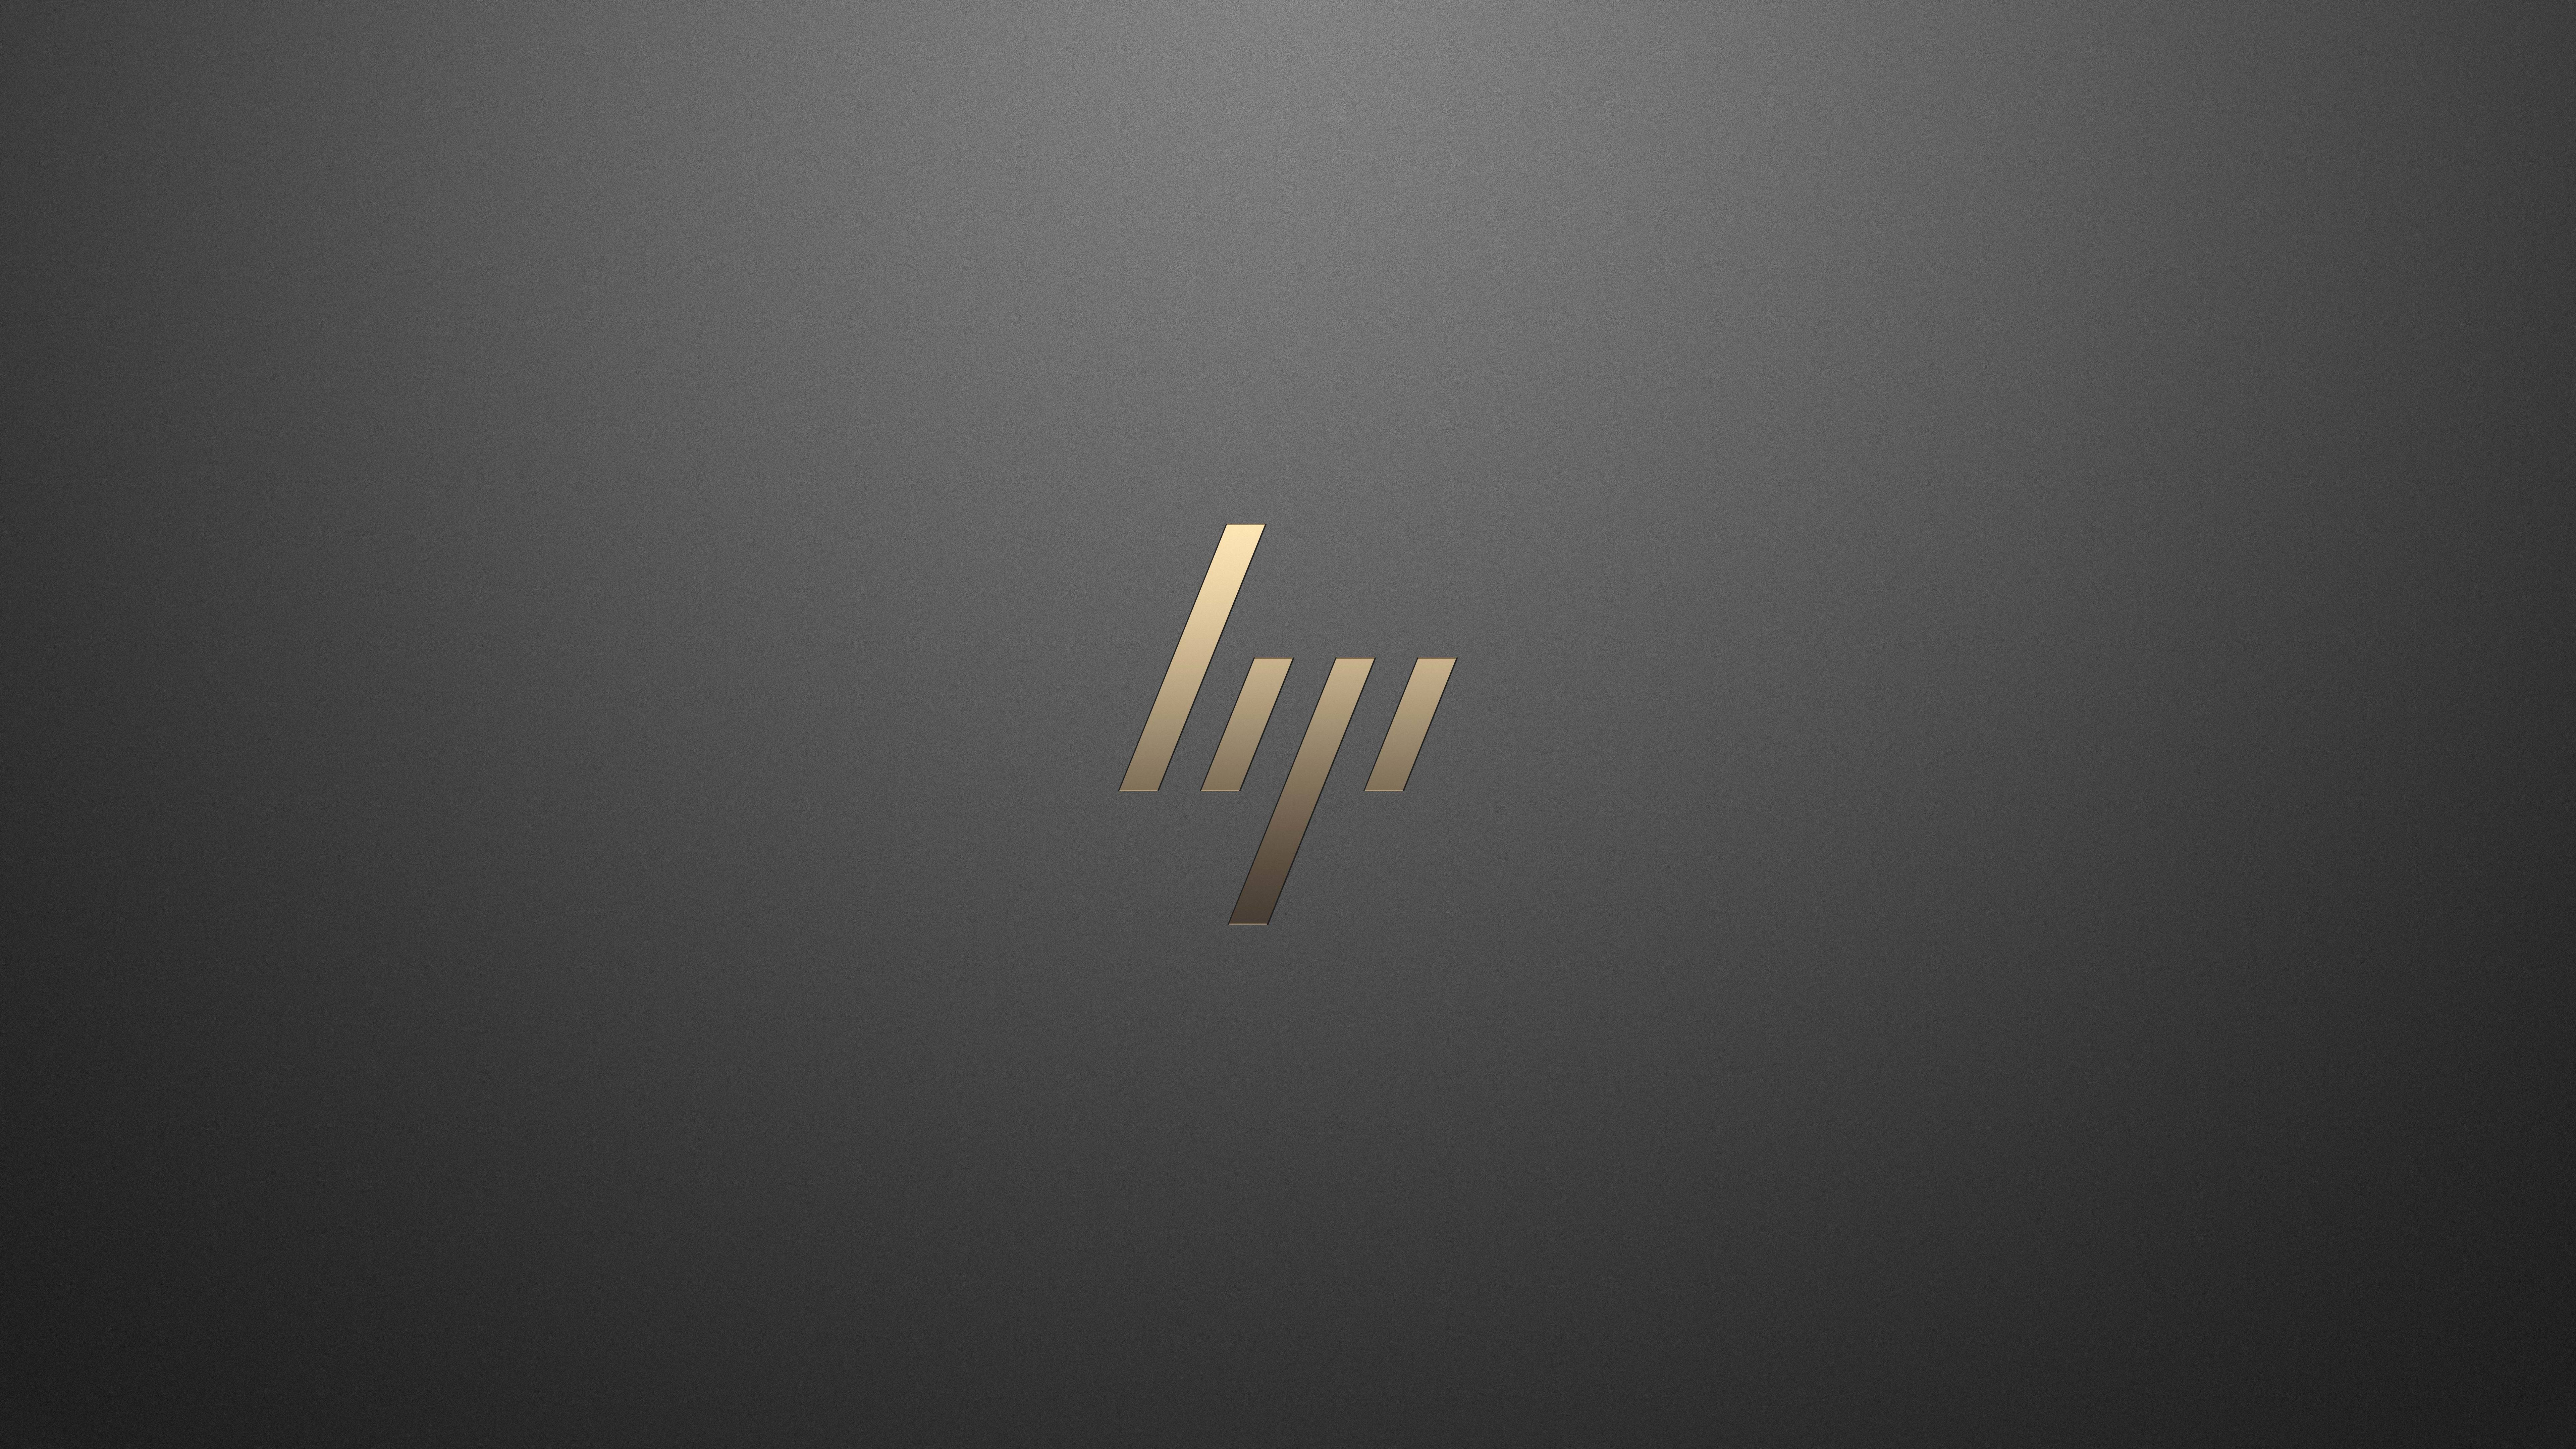 7680x4320 - Wallpapers for HP Envy 6